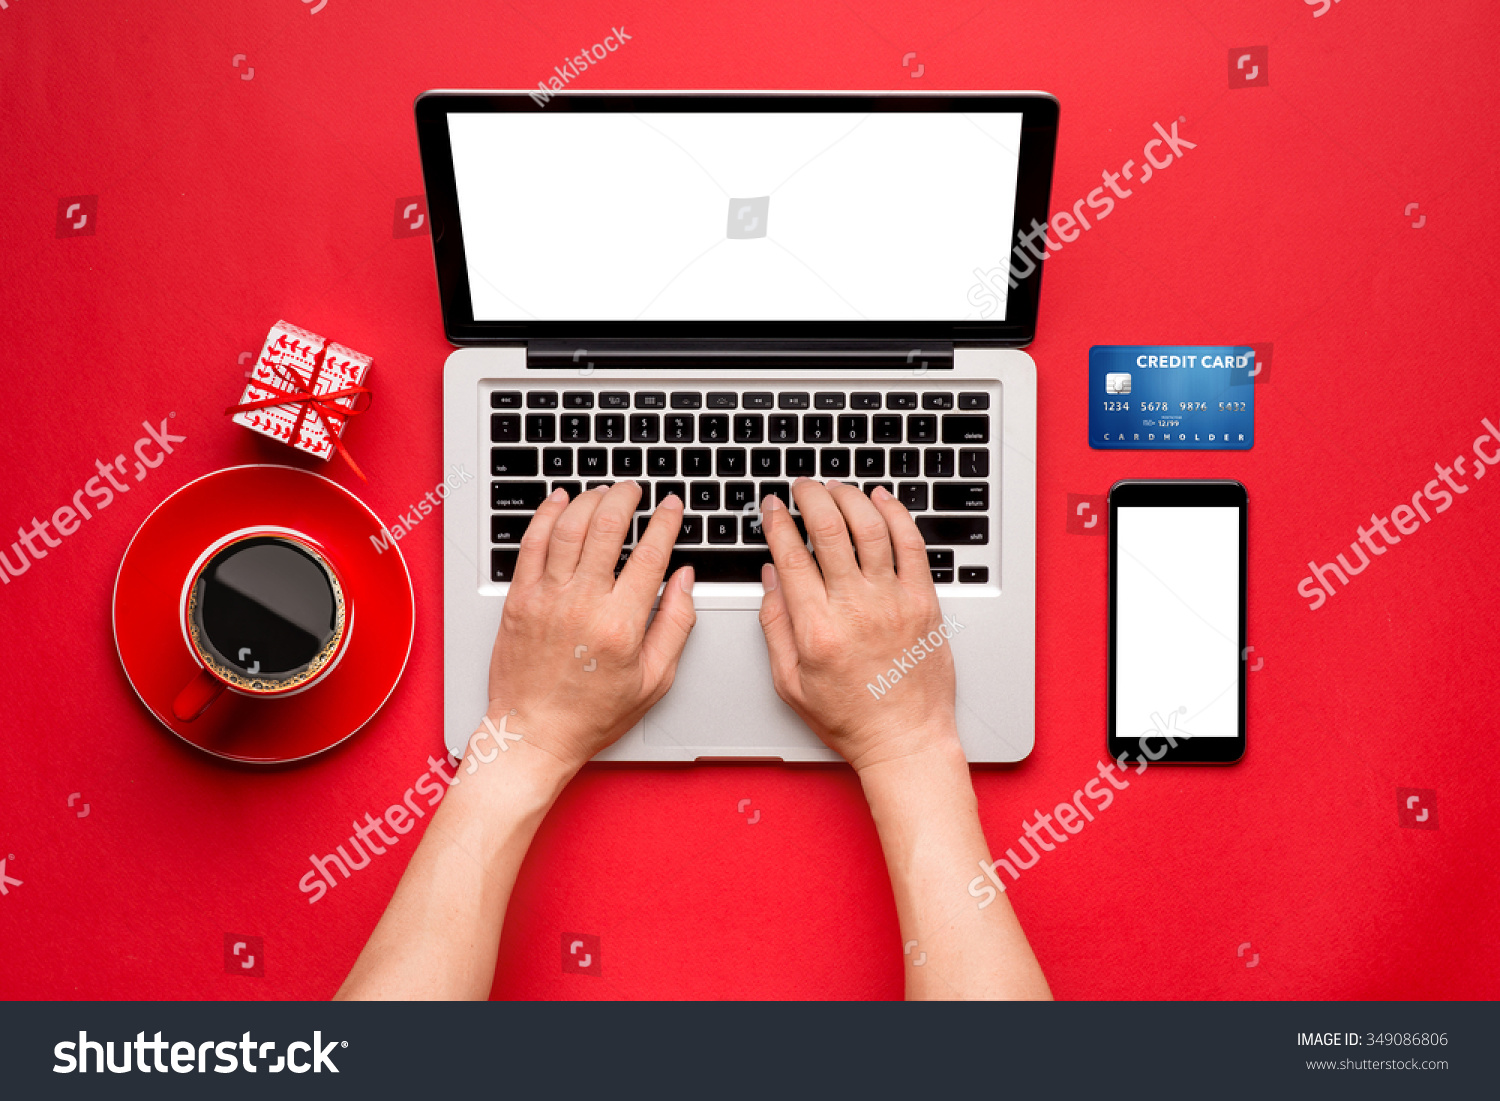 Top View Man Buying Christmas Gifts Stock Photo (Edit Now) 349086806 ...